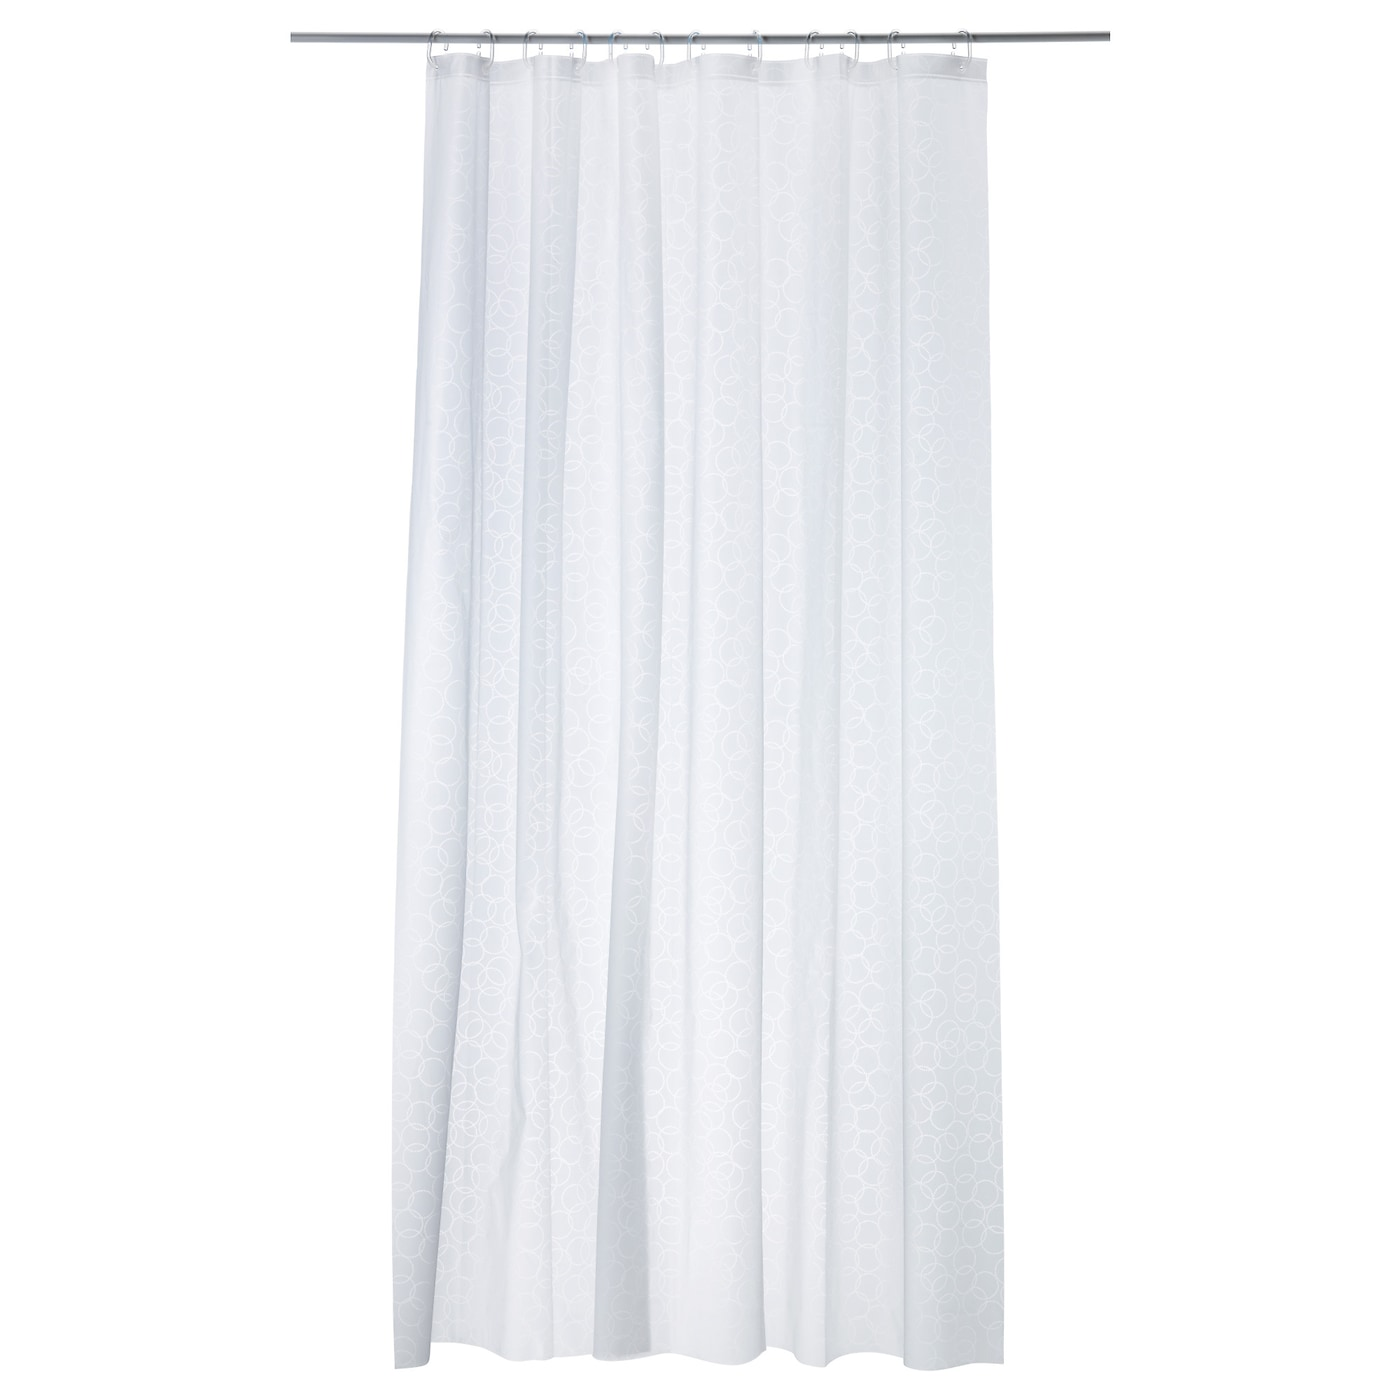 curtain fresh dollclique new shower by ideas stall curtains knowee of